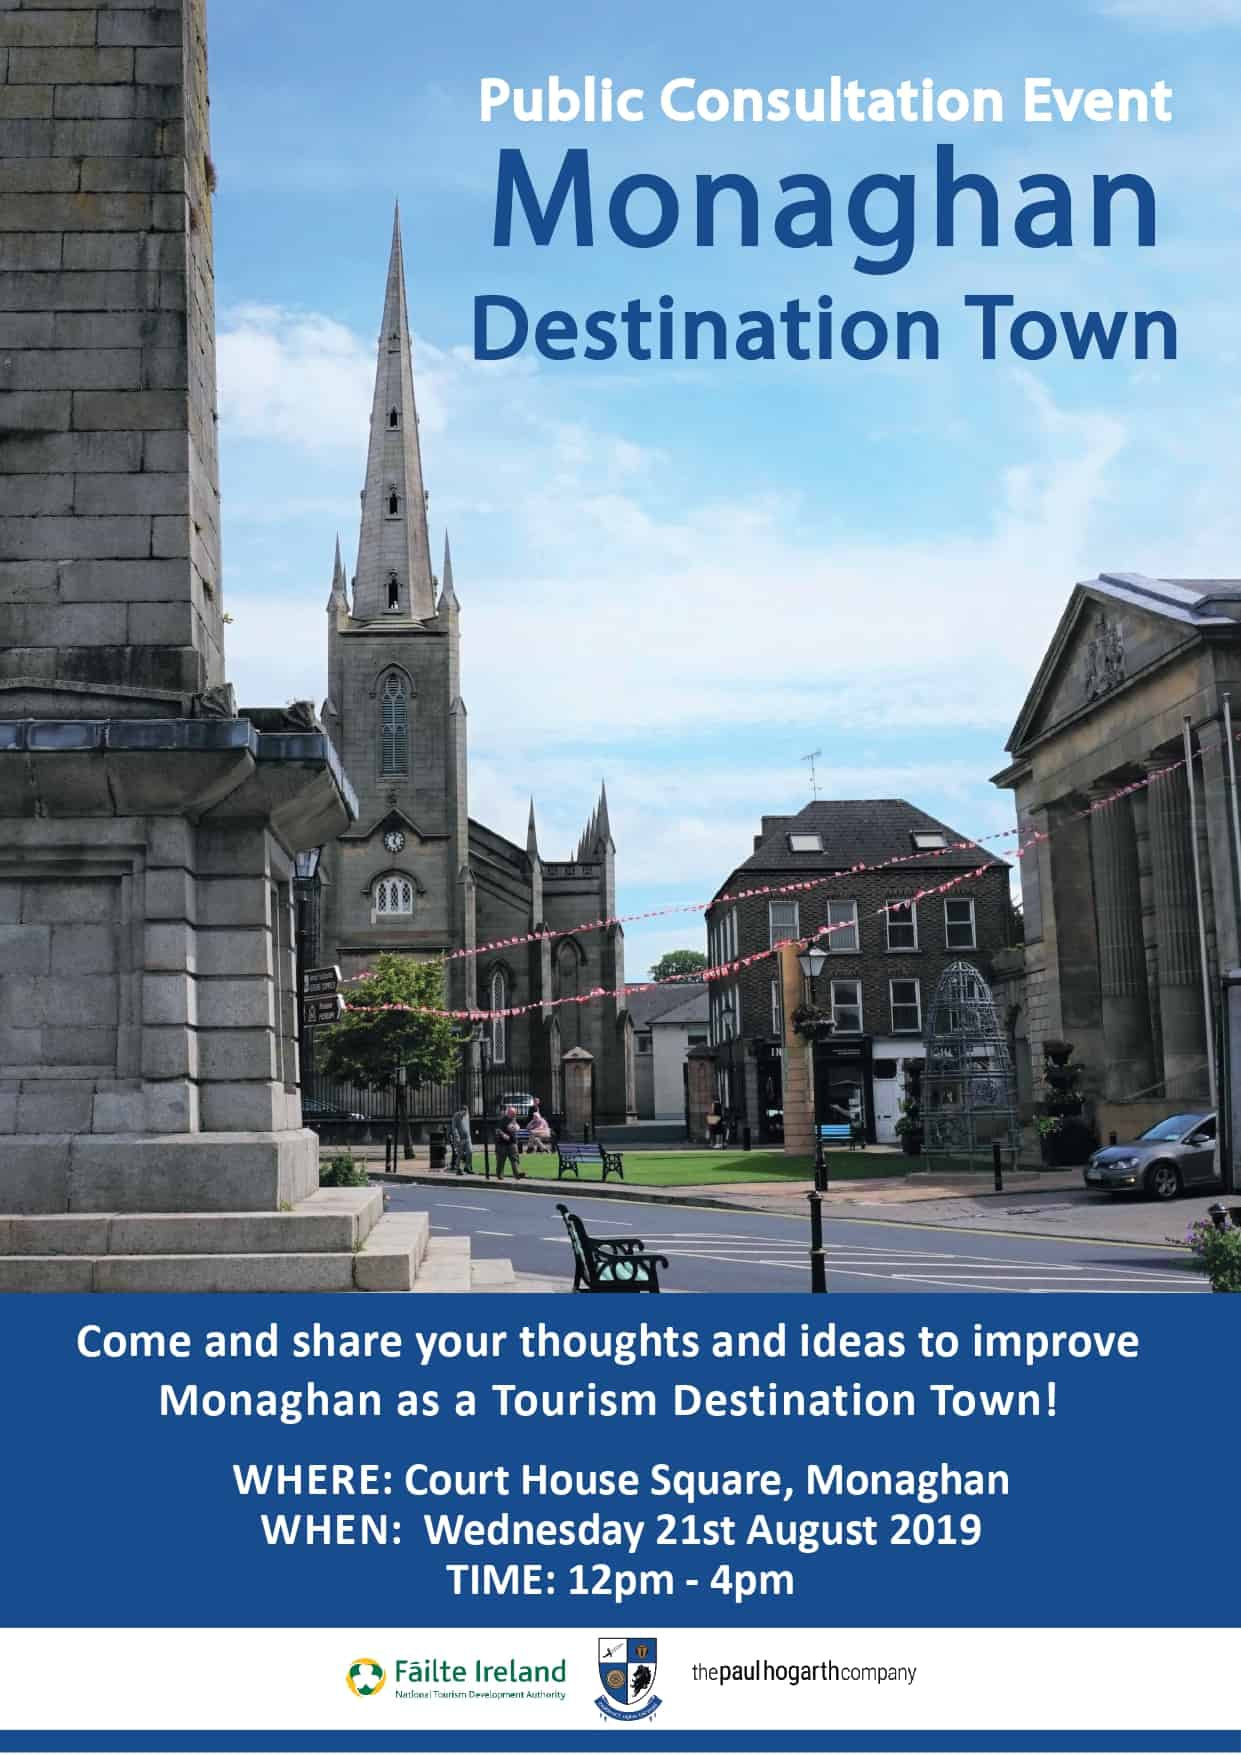 Monaghan - Destination Towns Public Consultation Event Wednesday 21st August 2019